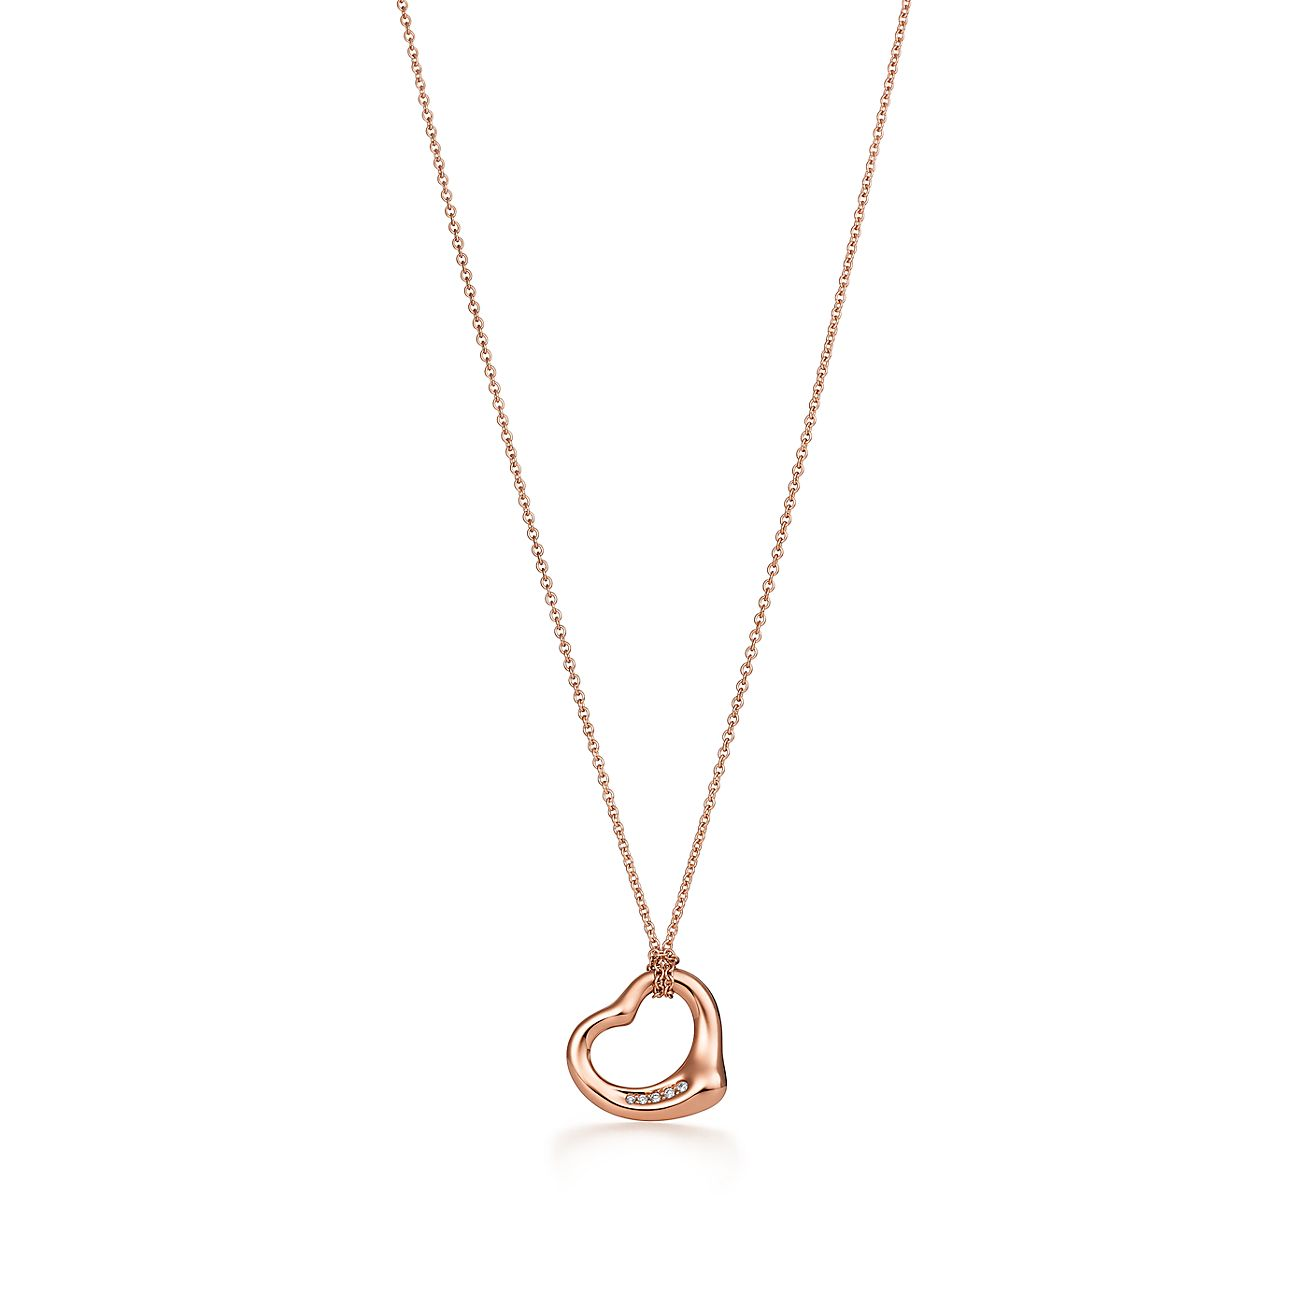 Elsa Peretti Open Heart pendant in 18k rose gold Tiffany & Co.